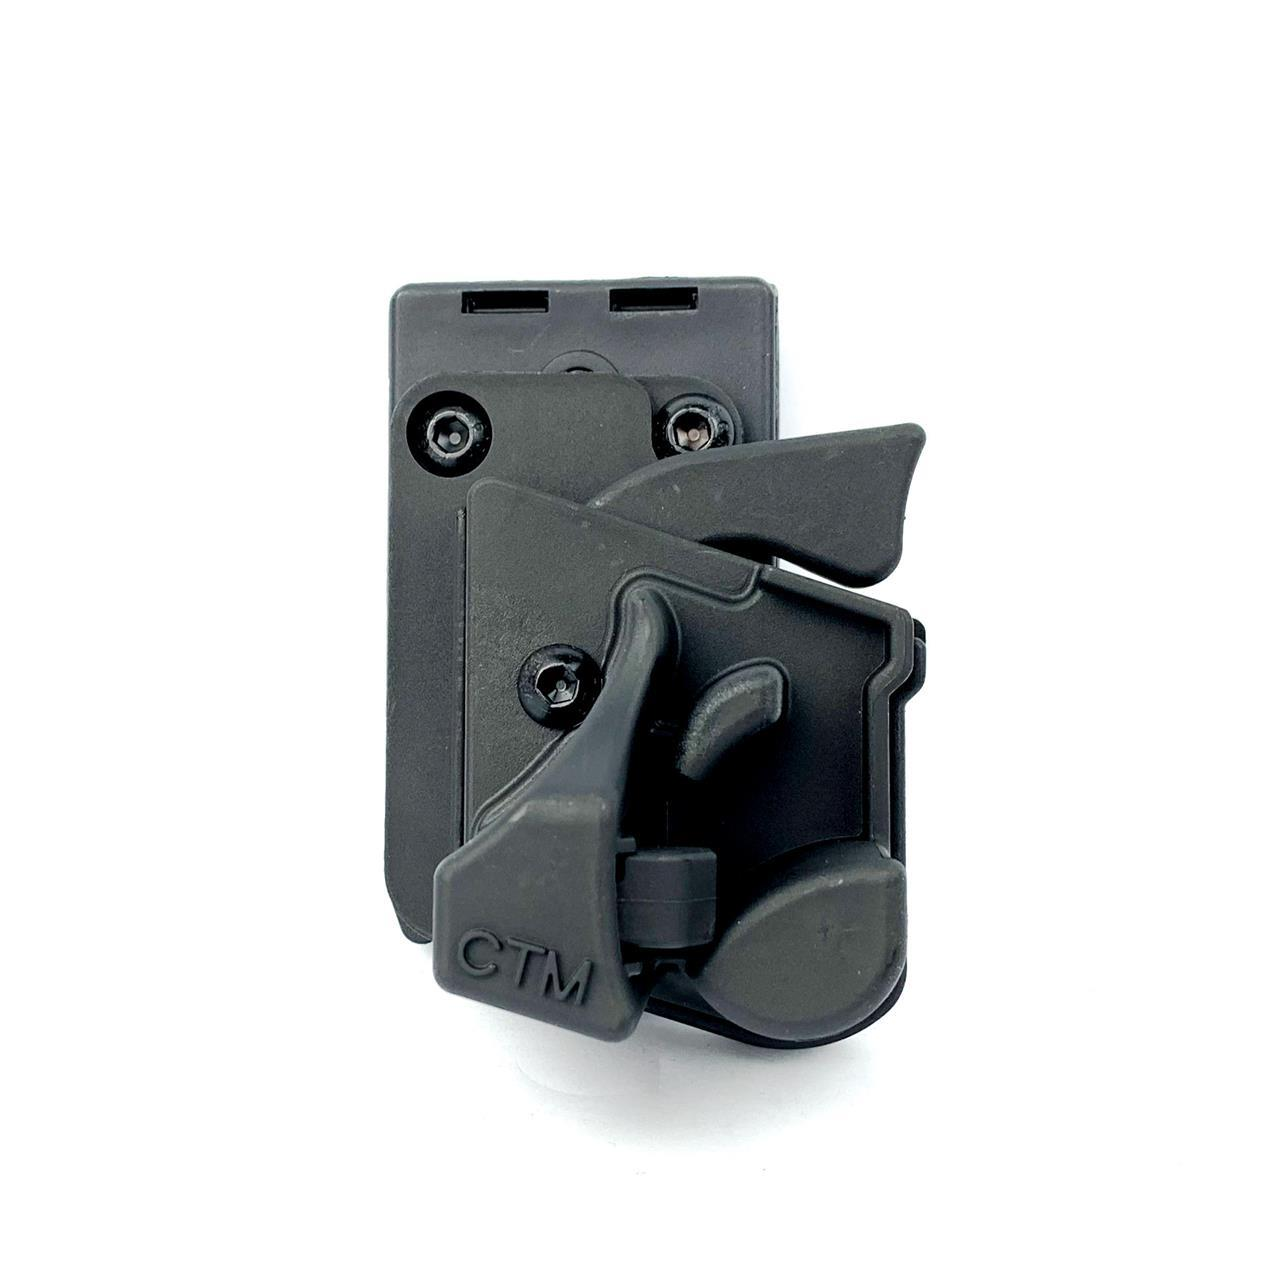 CTM Holster for Action Army AAP01 Pistol